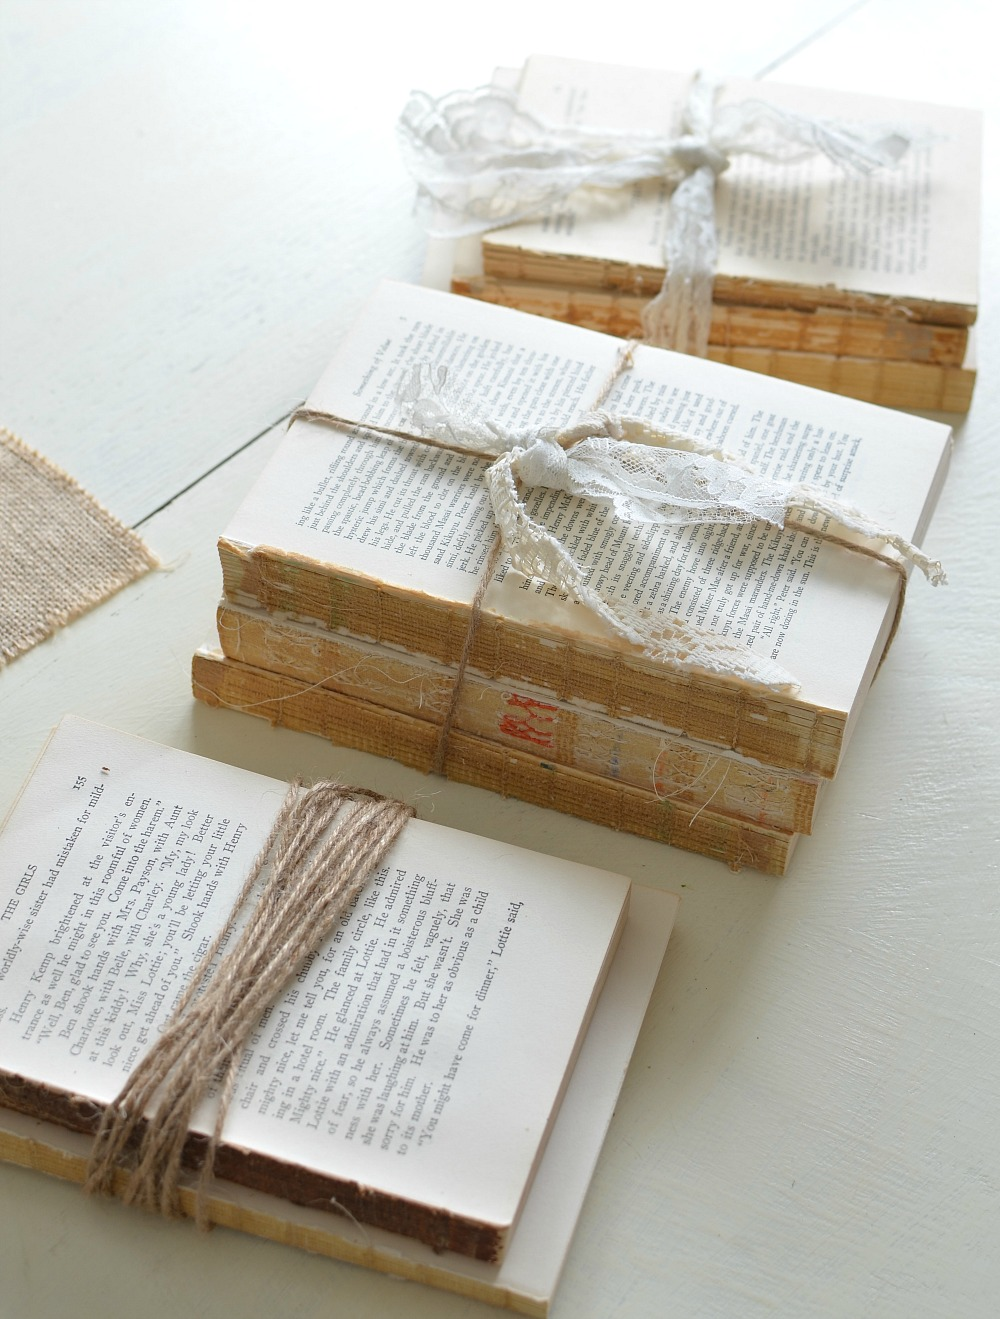 Uncategorized Book Decor farmhouse decor on a budget diy unbound vintage books wrapped in twine